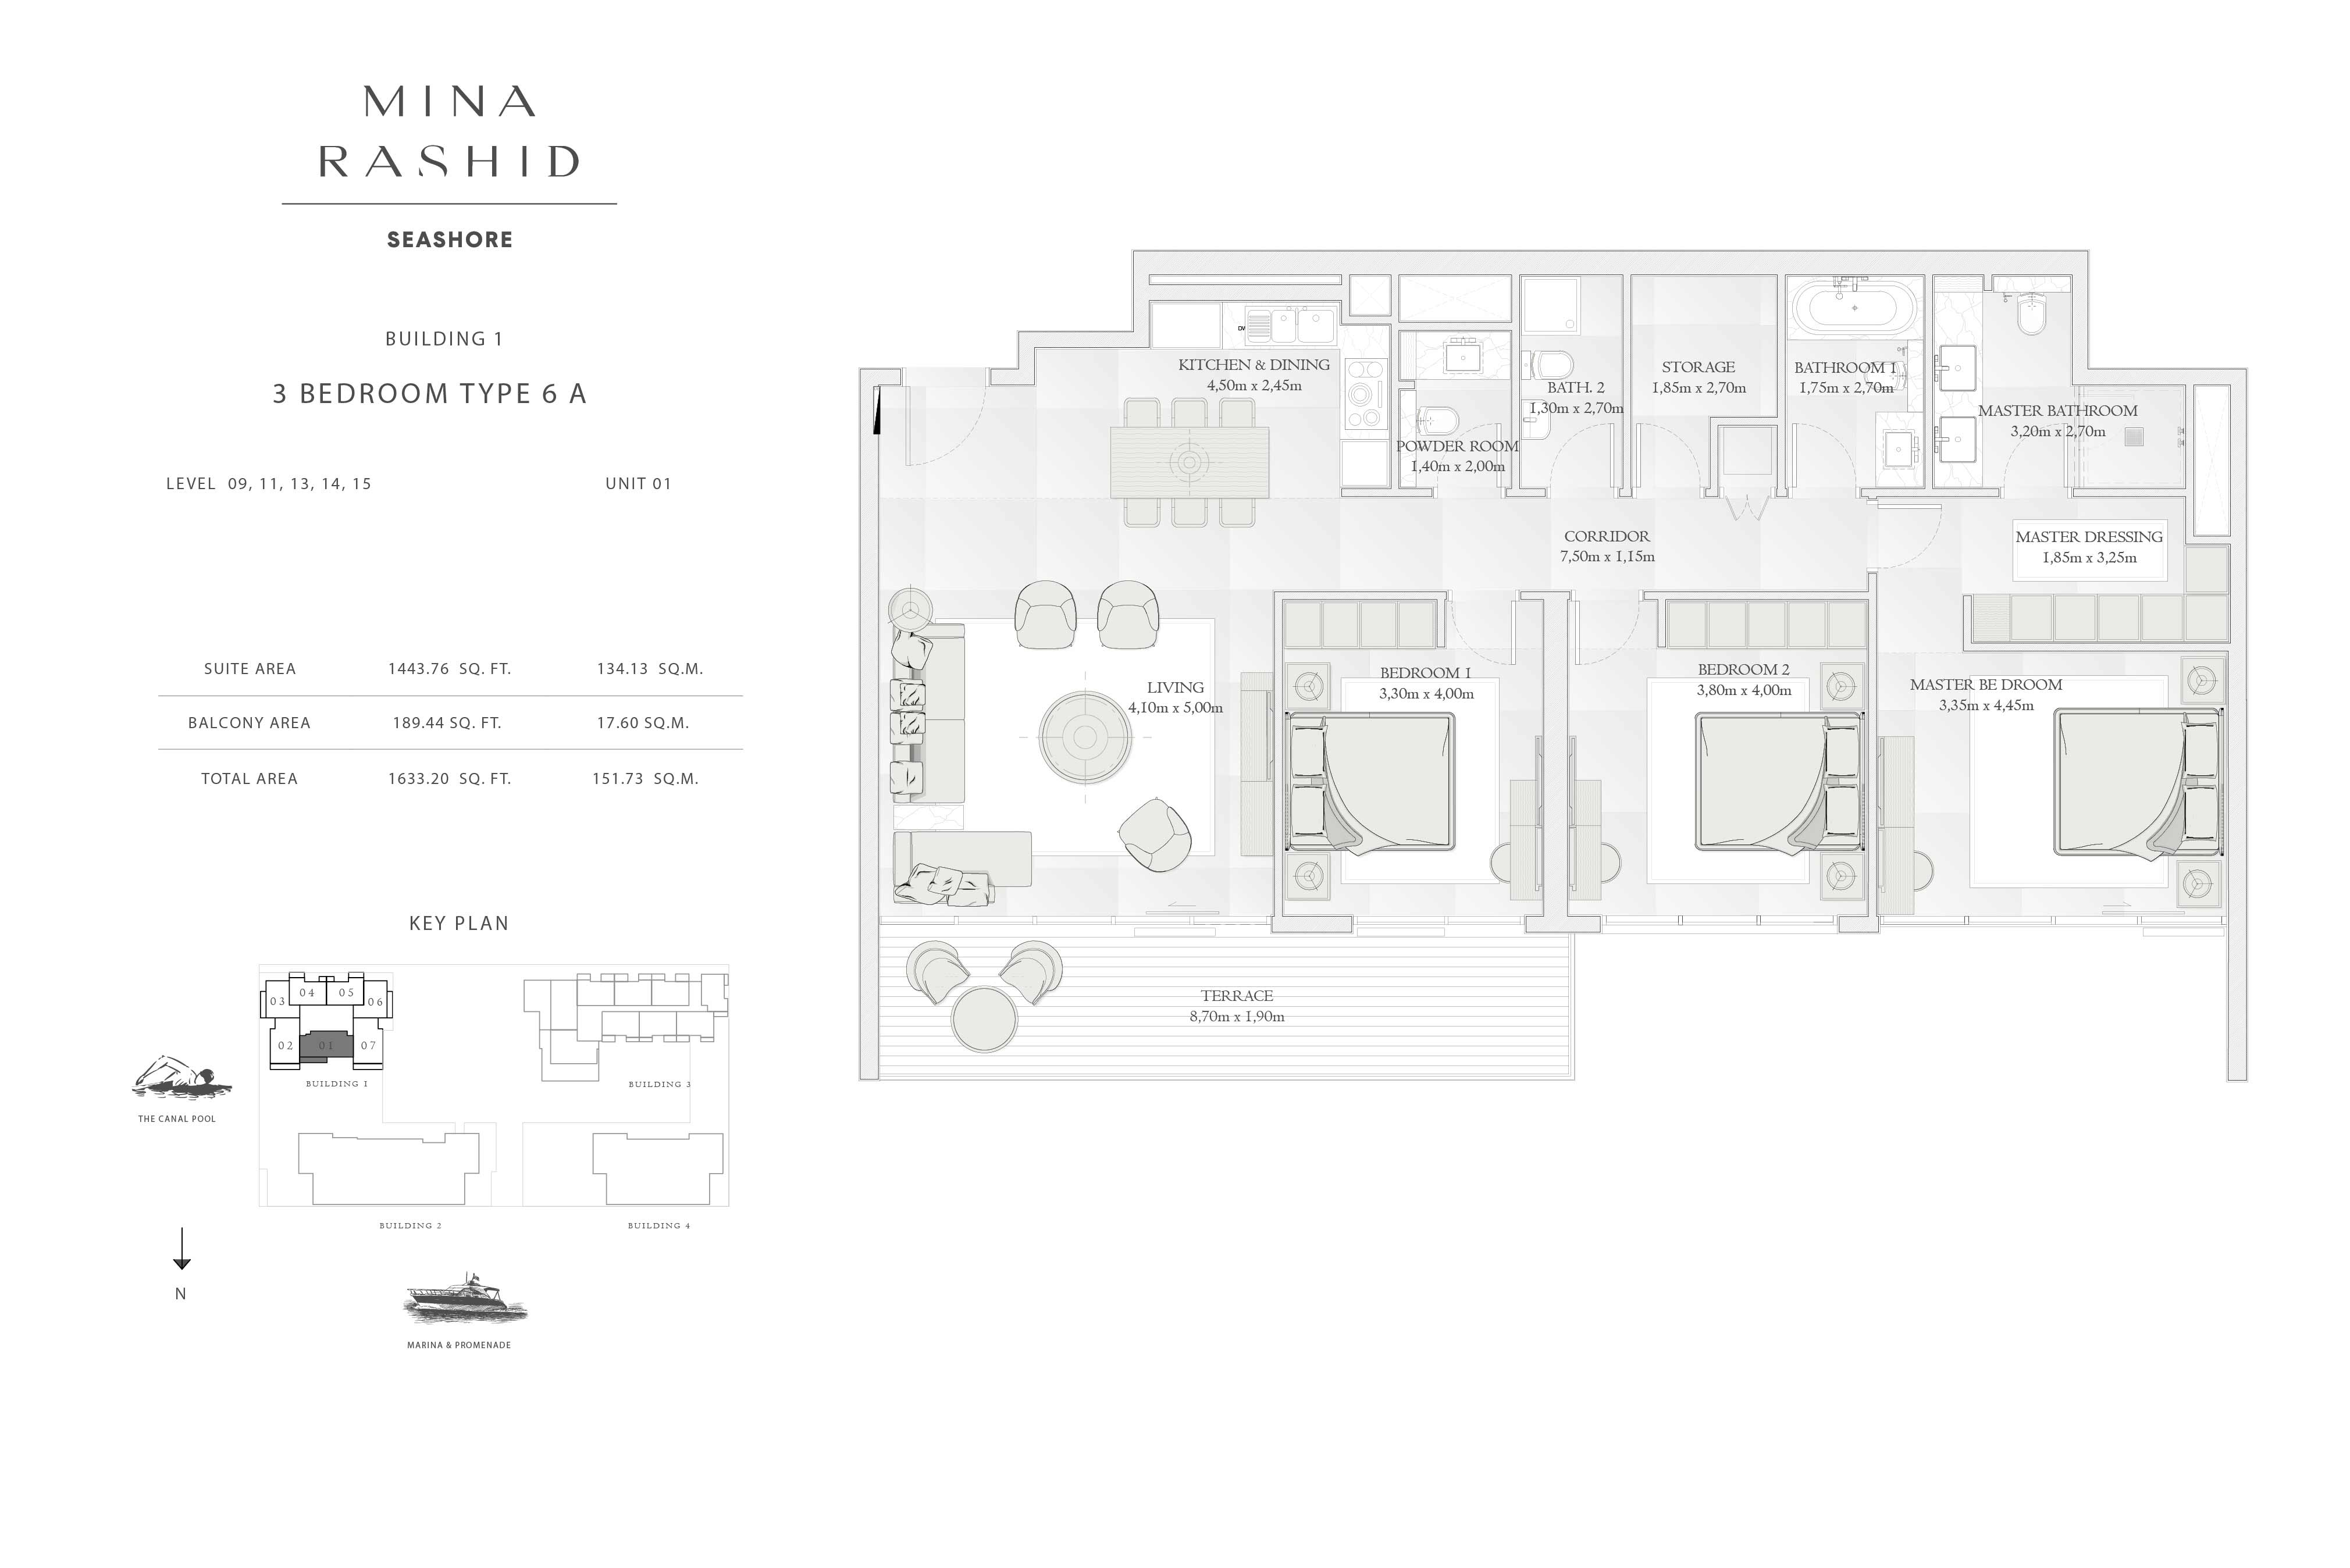 Building-1, 3-Bedroom Type-6A, Size-1633-Sq-Ft